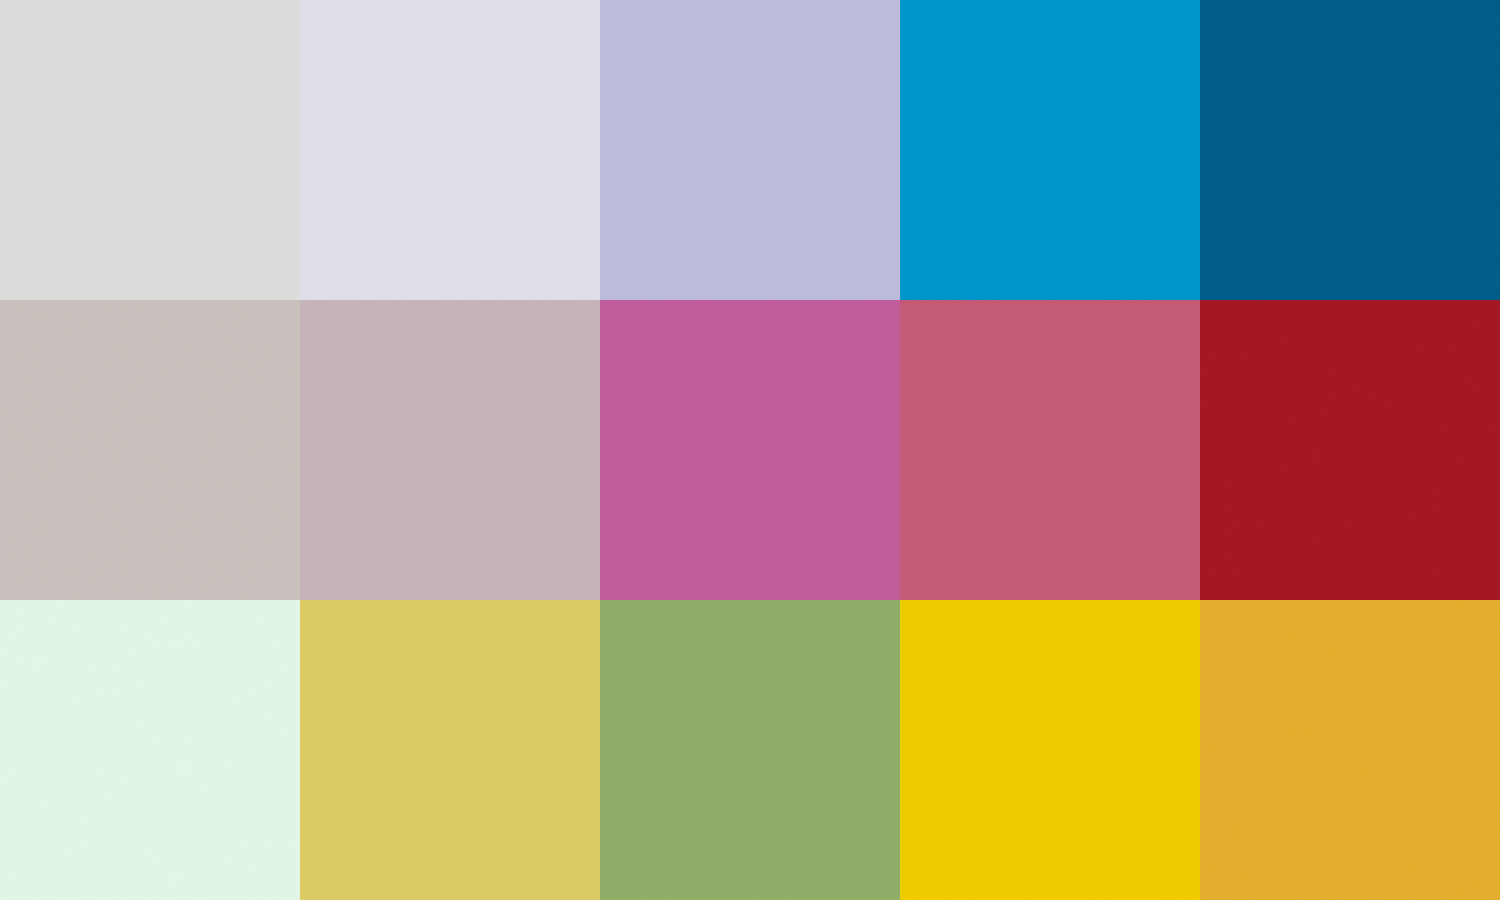 Lily's colour map